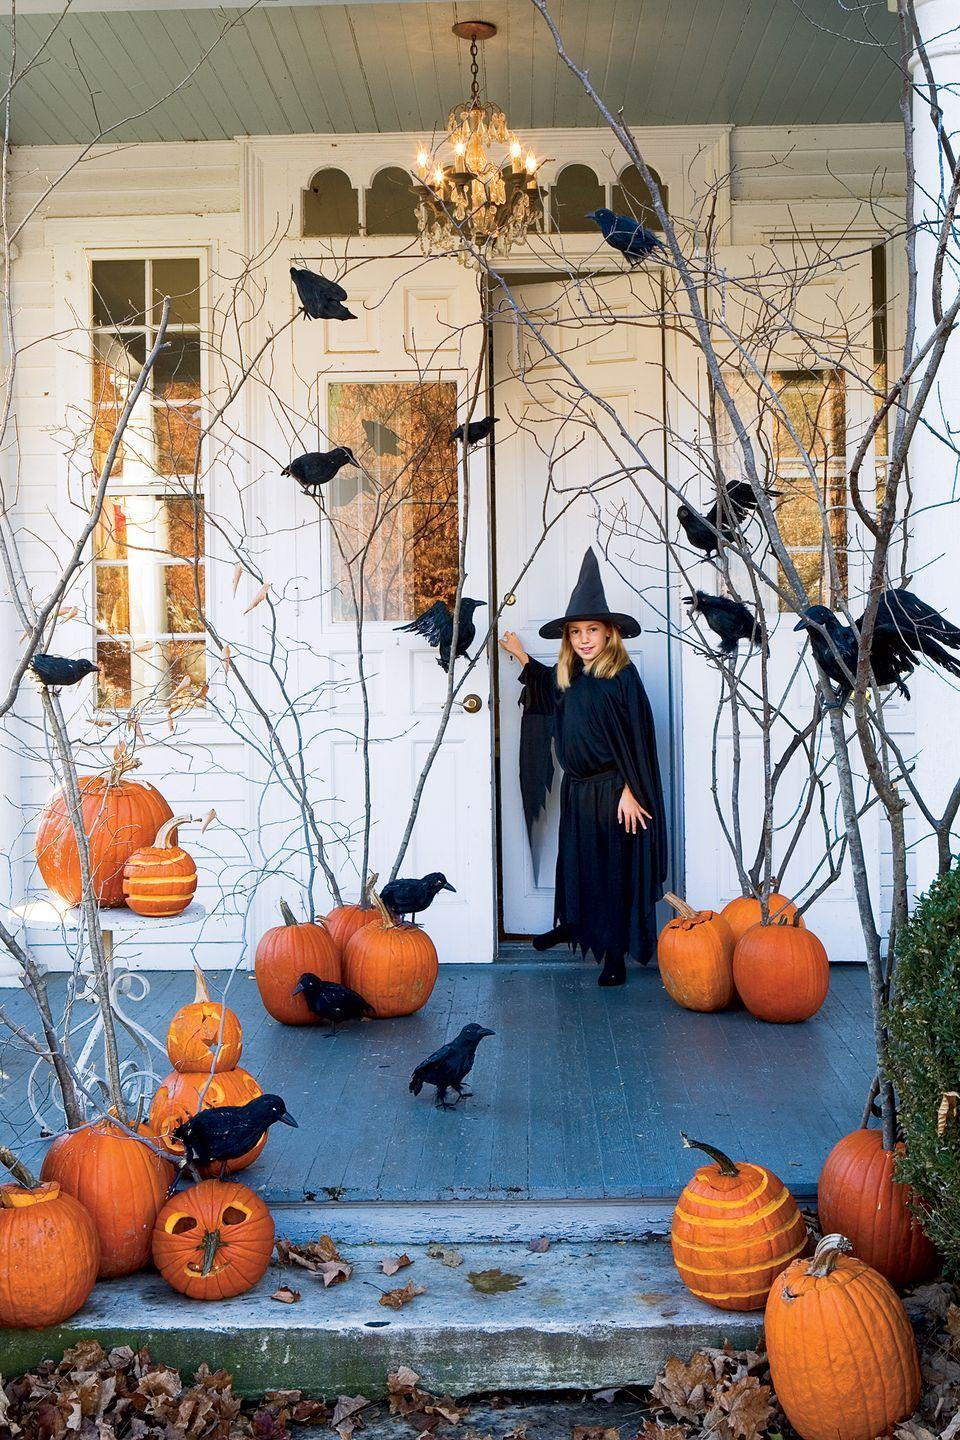 """<p>Play up the dark side of Halloween by placing faux ravens (or any other black bird of choice) on branches in front of your entrance. Introduce contrast with an assortment of pumpkins.<br><br><a class=""""link rapid-noclick-resp"""" href=""""https://go.redirectingat.com?id=74968X1596630&url=https%3A%2F%2Fwww.etsy.com%2Flisting%2F65696398%2Fhalloween-raven-bird-decoration-prop-poe&sref=https%3A%2F%2Fwww.goodhousekeeping.com%2Fholidays%2Fhalloween-ideas%2Fg32948621%2Fhalloween-door-decorations%2F"""" rel=""""nofollow noopener"""" target=""""_blank"""" data-ylk=""""slk:SHOP RAVEN BIRD DECOR"""">SHOP RAVEN BIRD DECOR</a></p>"""